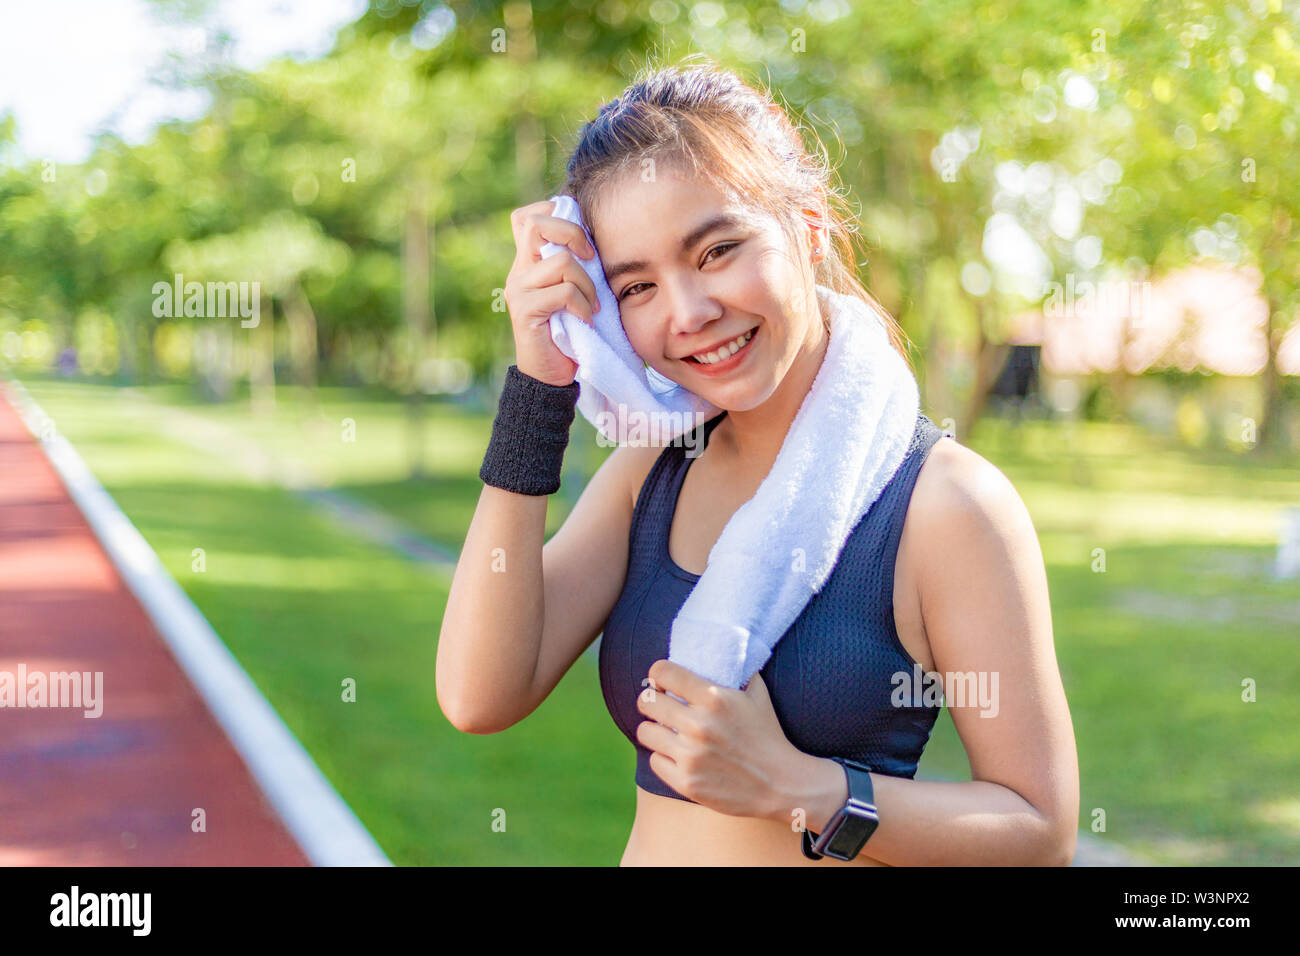 Beautiful young happy healthy Asian woman using her white towel to wipe of her sweat after her running exercise in the morning at a running track, blu - Stock Image